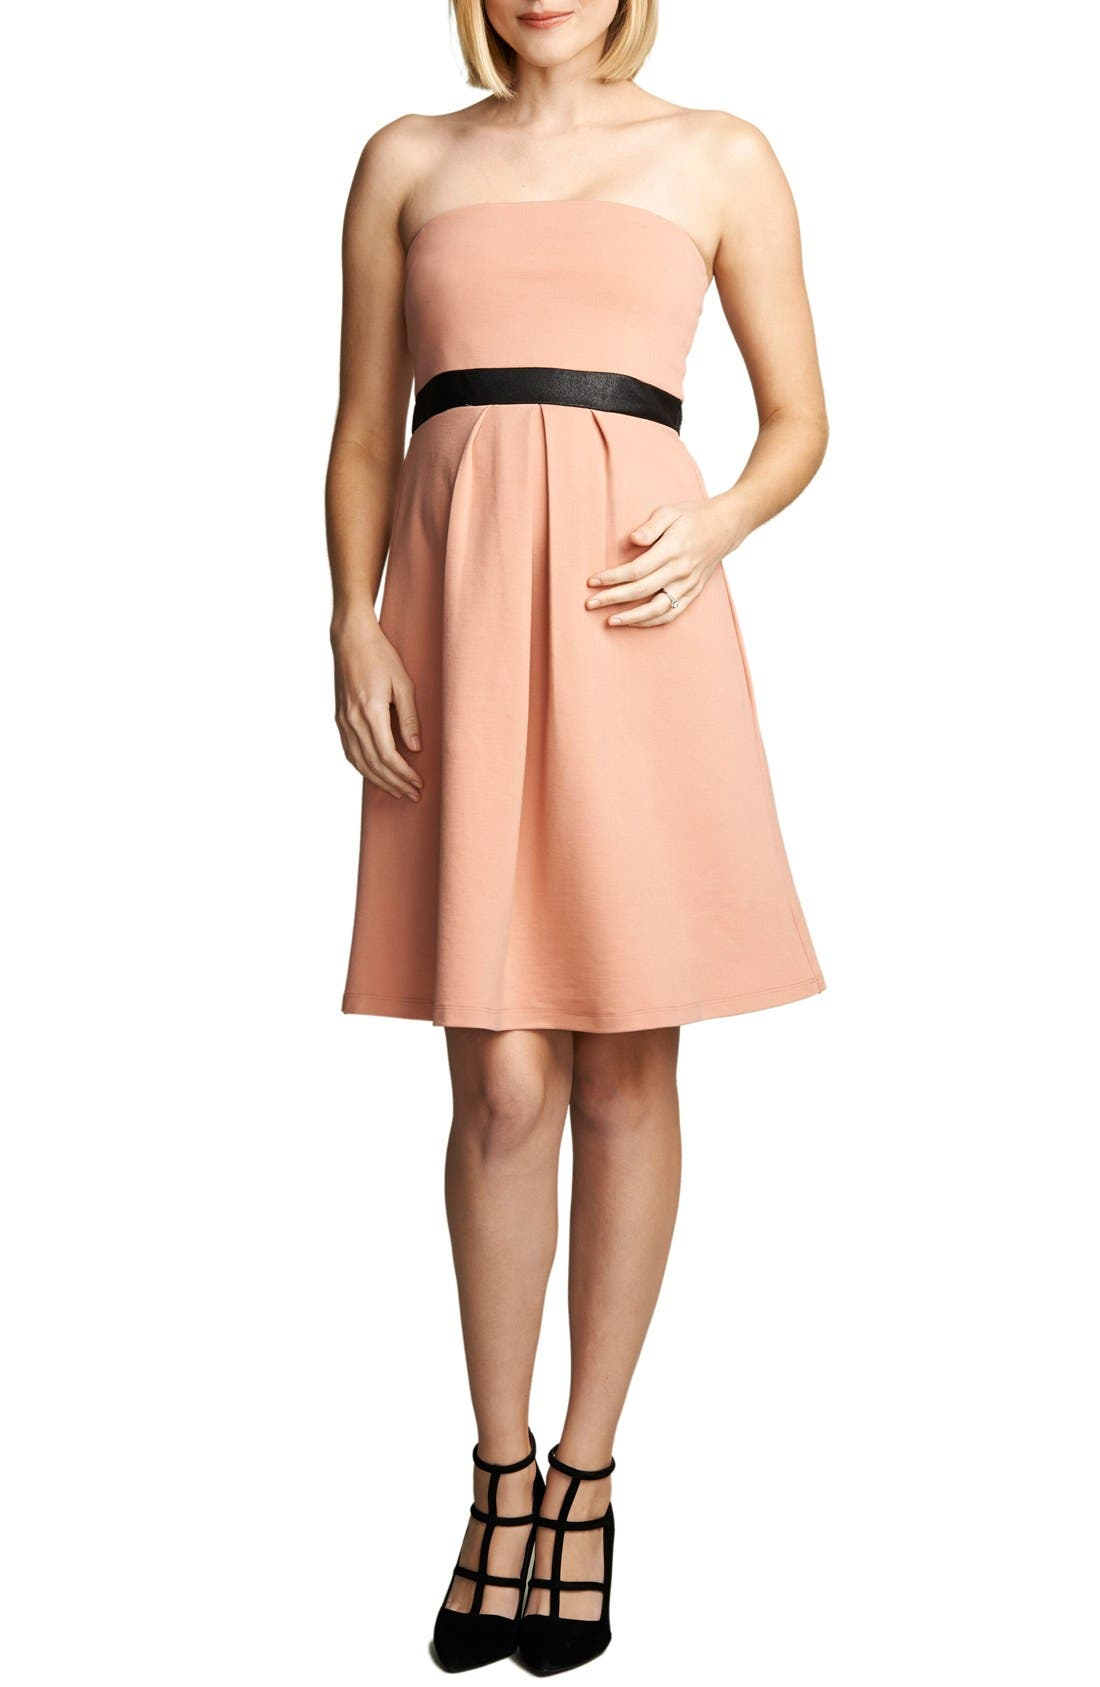 Strapless Maternity Dress,                         Main,                         color, Blush/ Black